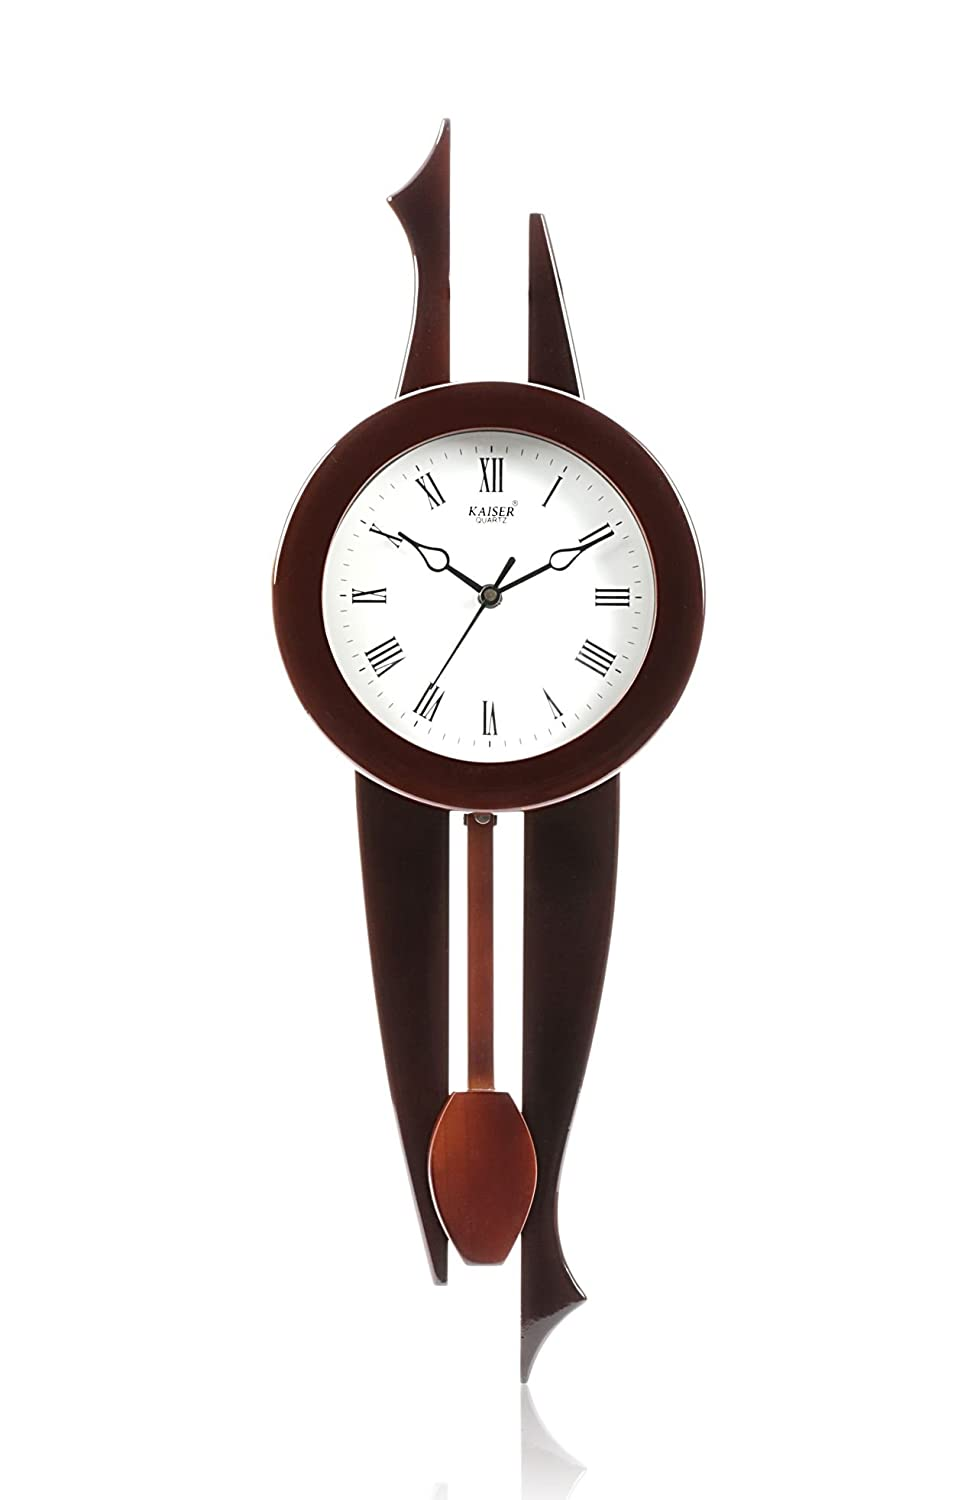 Buy kaiser wooden wall clock with pendulum 525x190x80 mm cola buy kaiser wooden wall clock with pendulum 525x190x80 mm cola online at low prices in india amazon amipublicfo Image collections